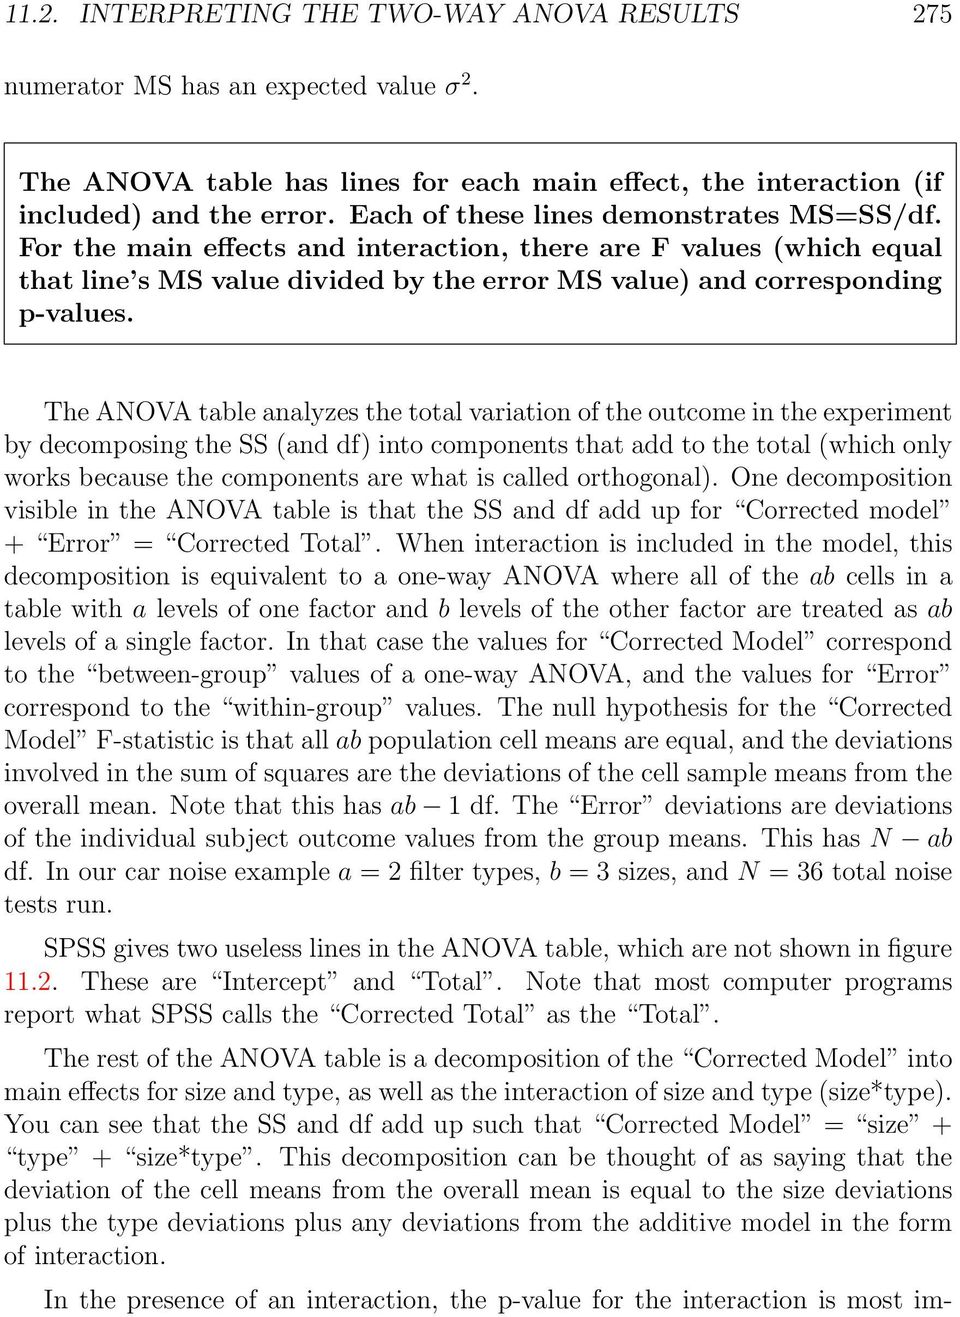 The ANOVA table analyzes the total variation of the outcome in the experiment by decomposing the SS (and df) into components that add to the total (which only works because the components are what is